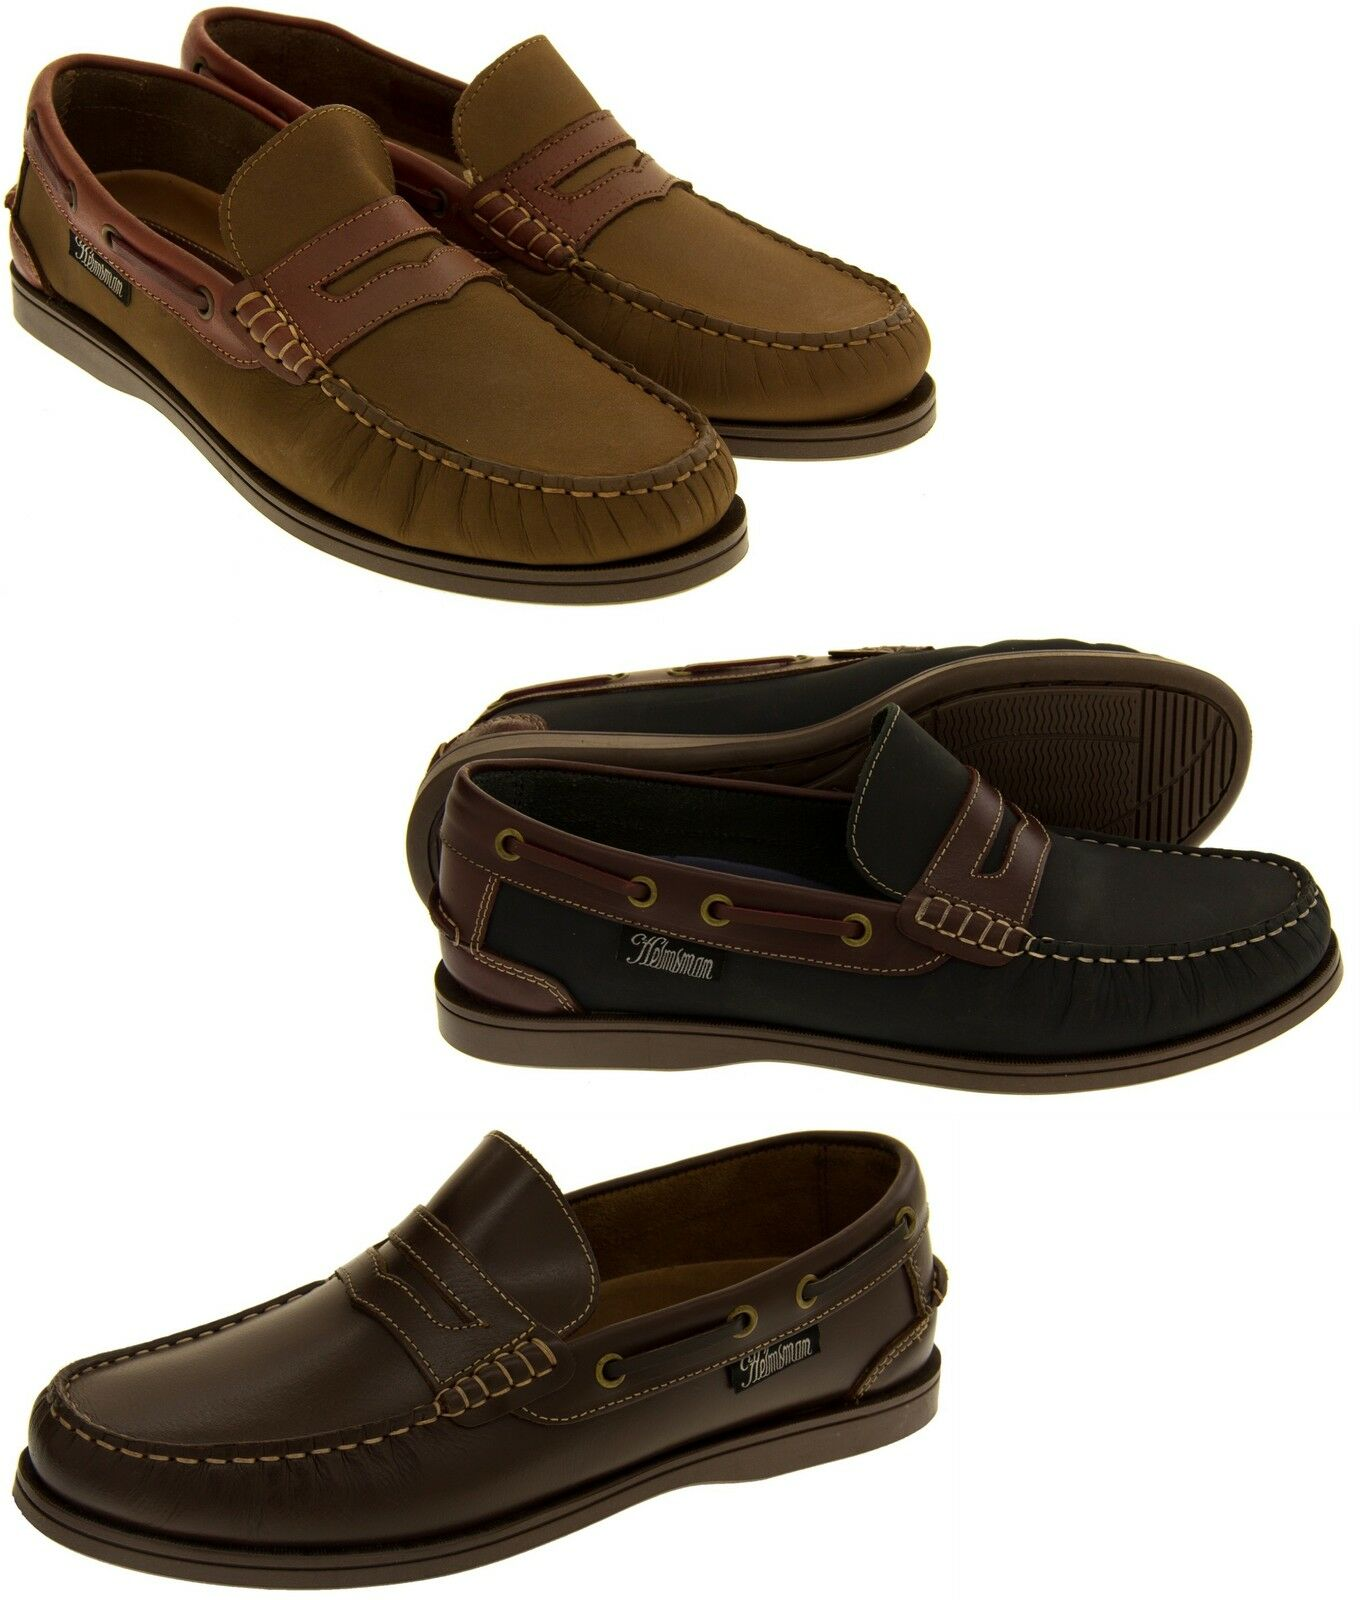 Mens Helmsman Leather Casual zapatos Deck zapatos Moccasin Loafer Talla 7 8 9 10 11 12